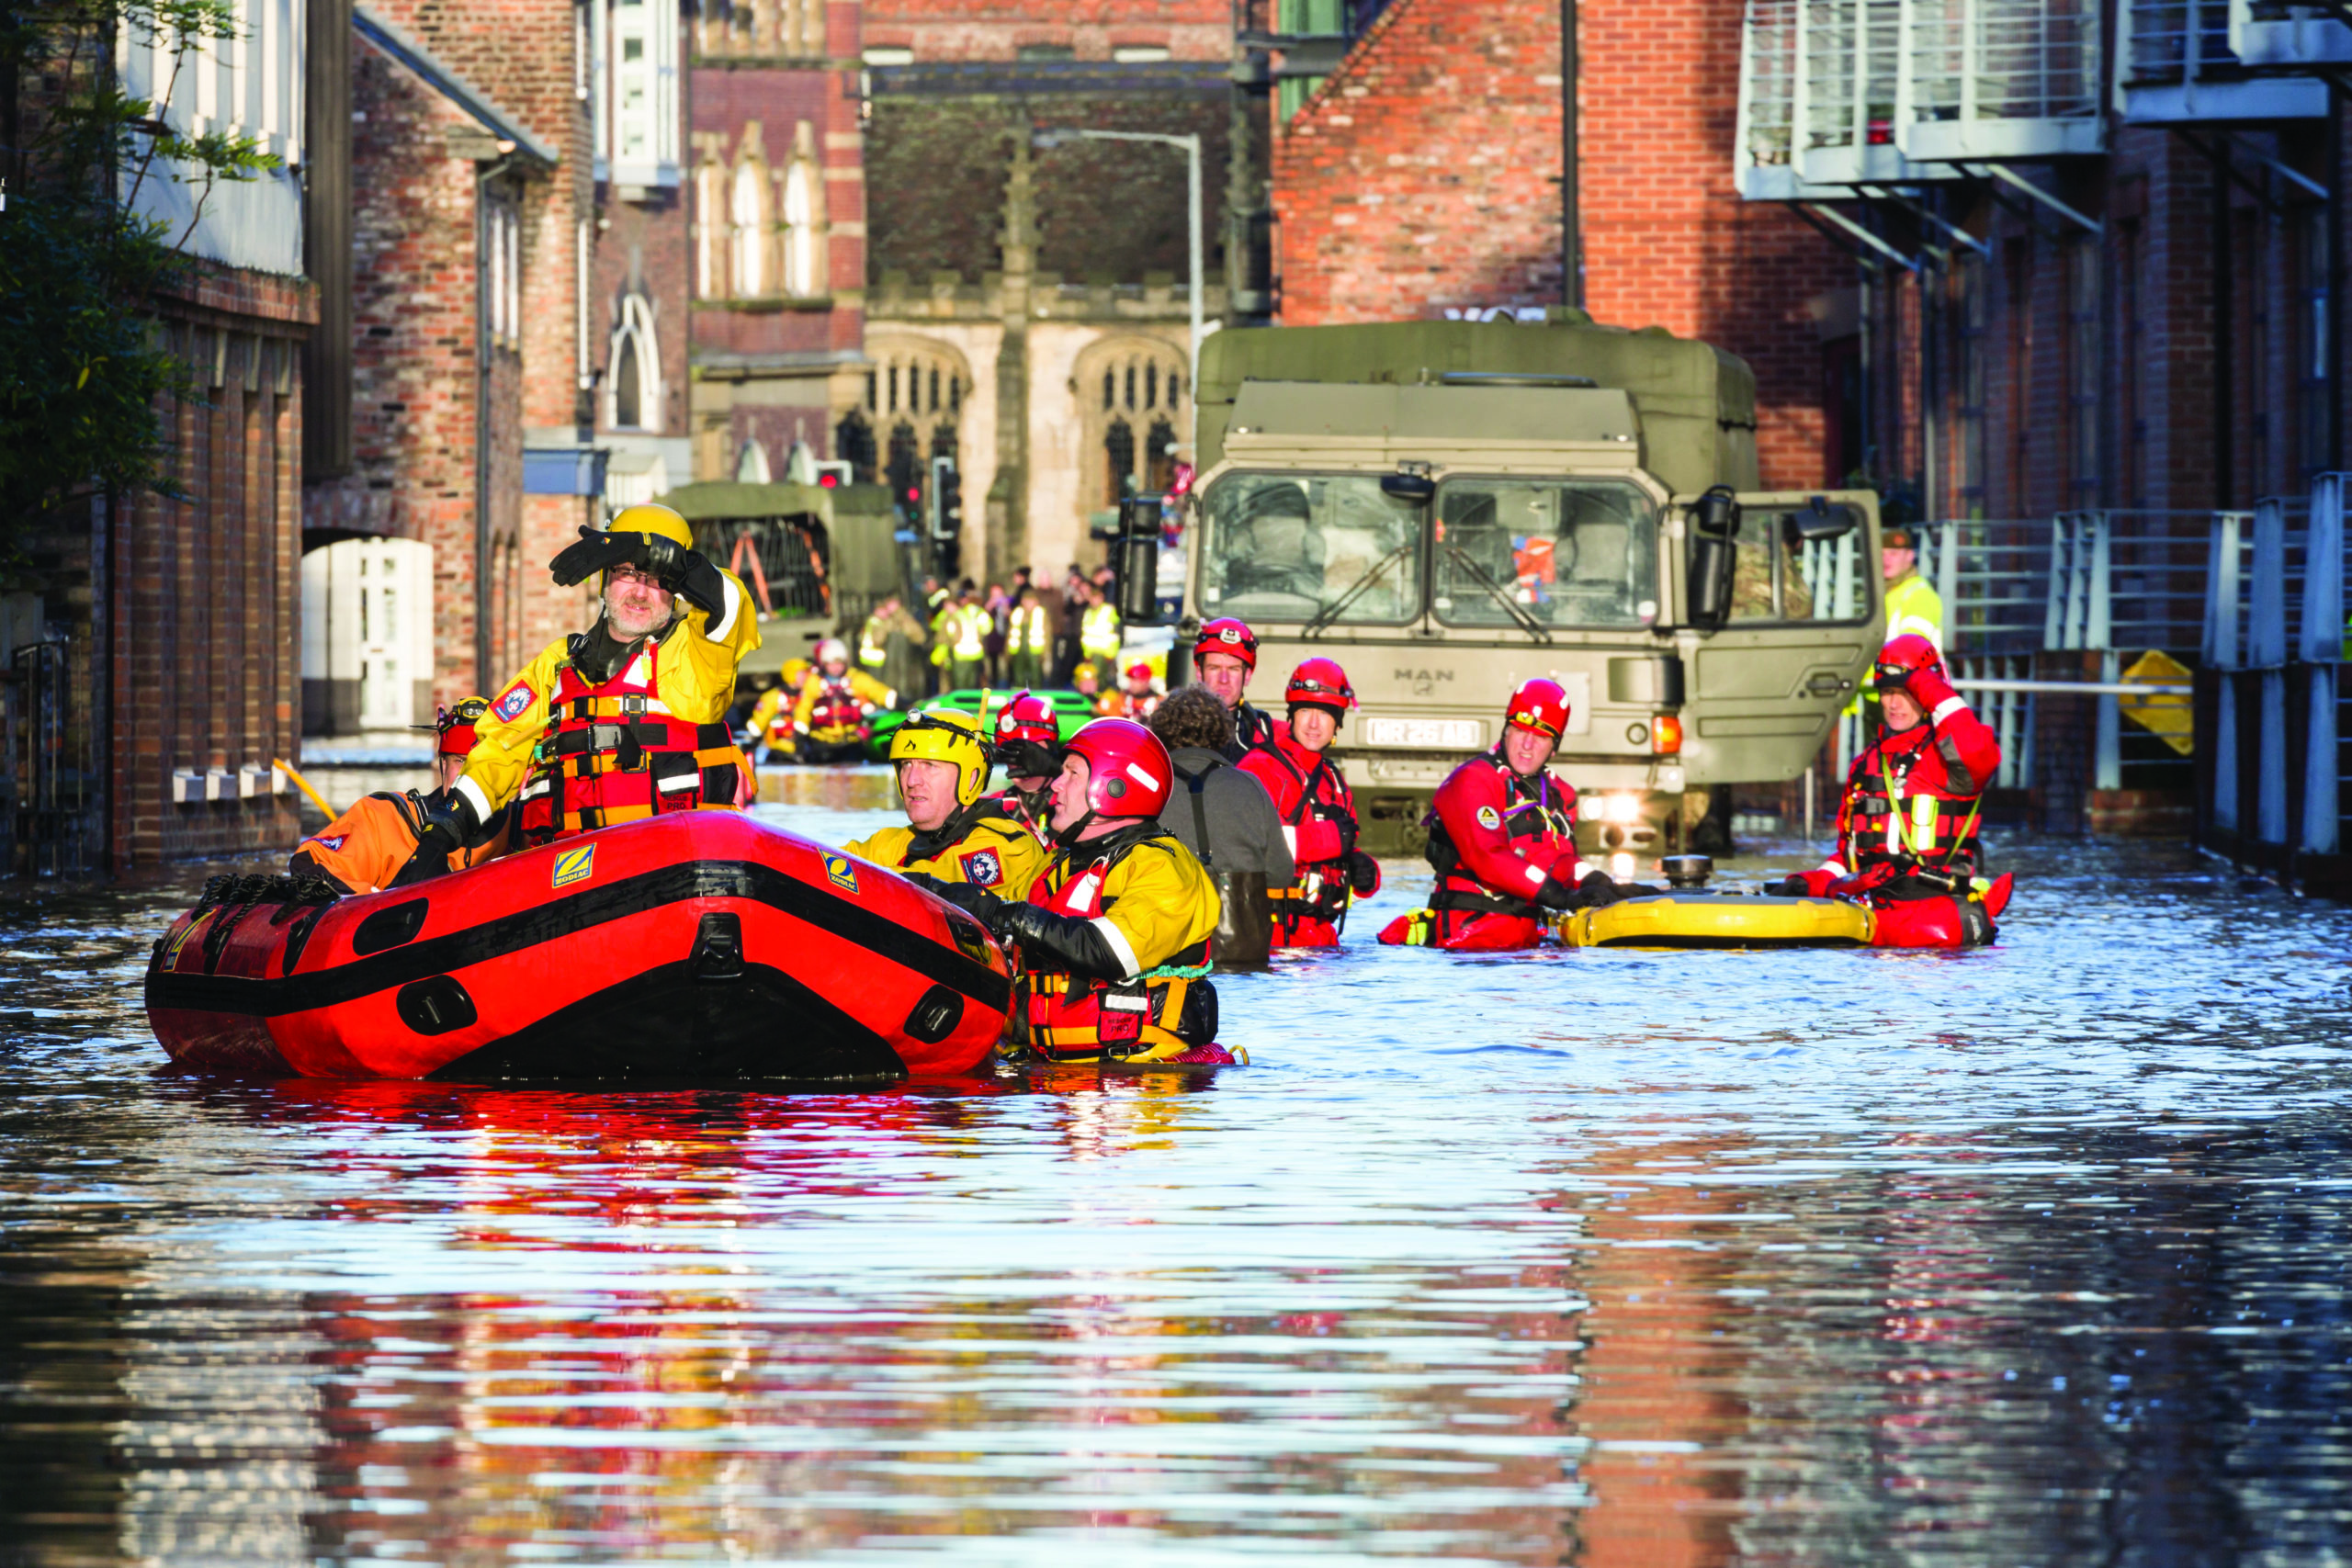 Rapid Response is Crucial for Any Emergency - An ERP Can Help